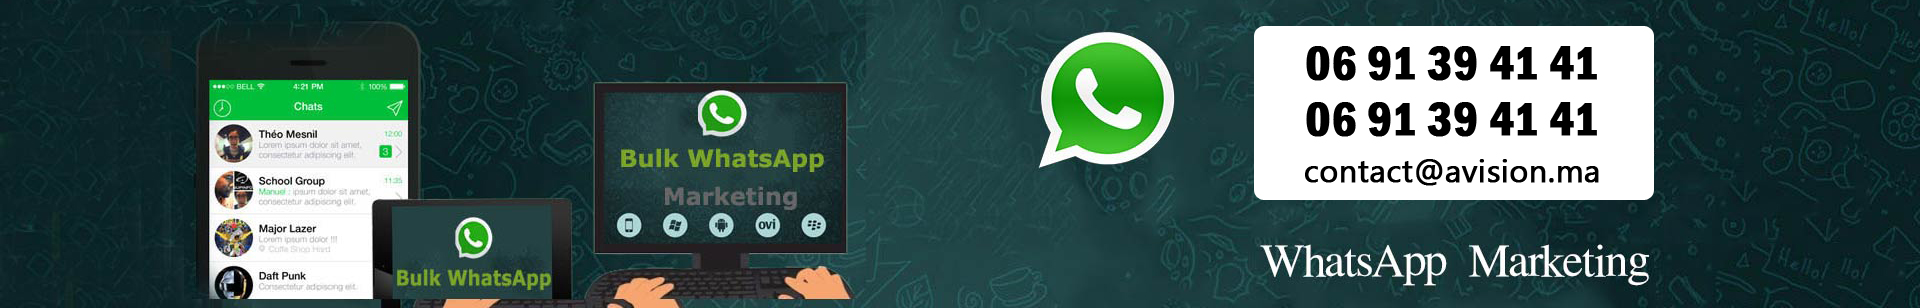 whatsapp Marketing maroc